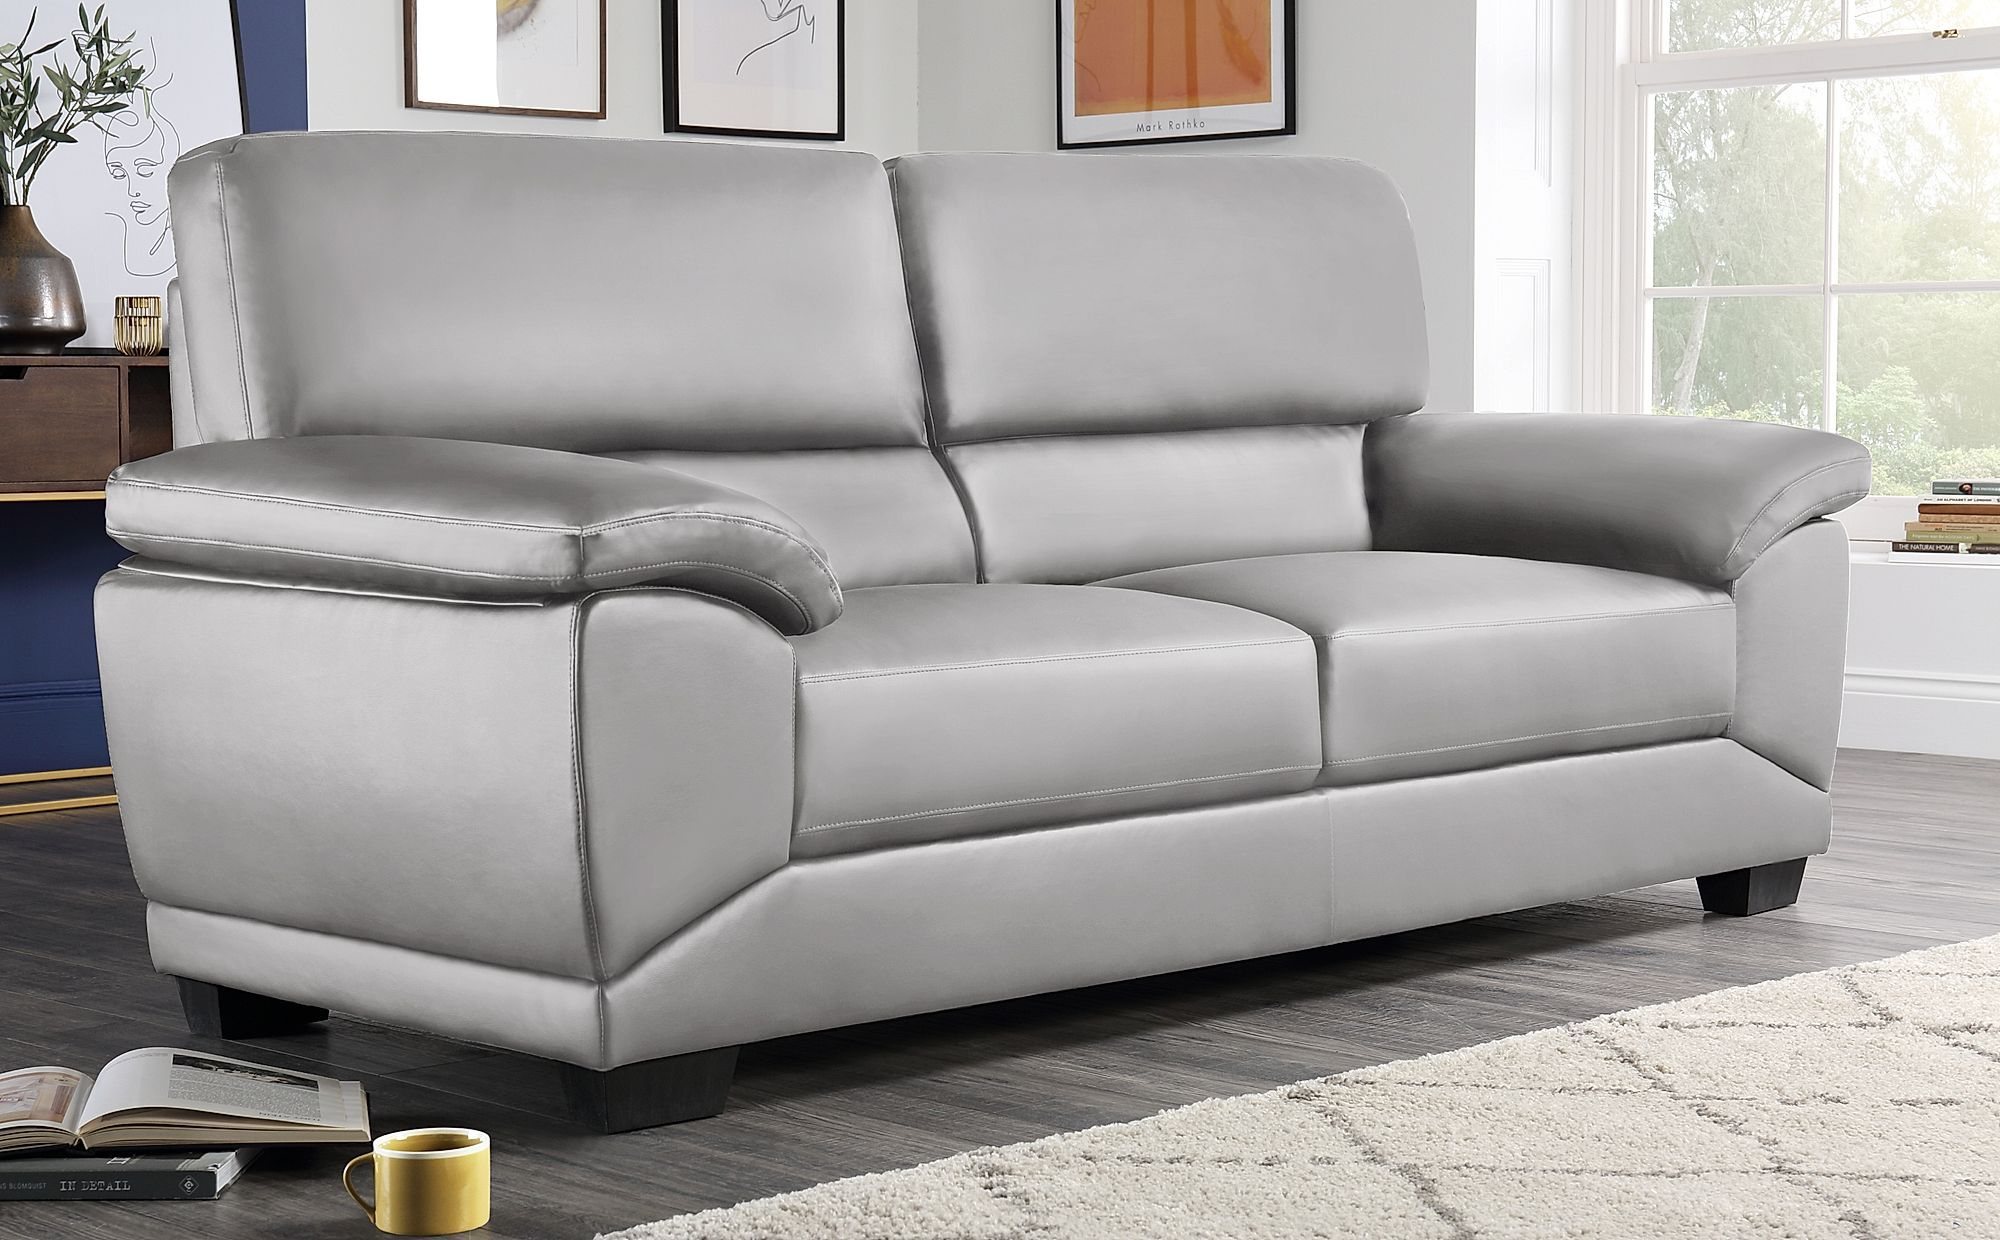 Oregon Light Grey Leather 3 Seater Sofa 2 Seater Sofa Sofa 3 Seater Sofa